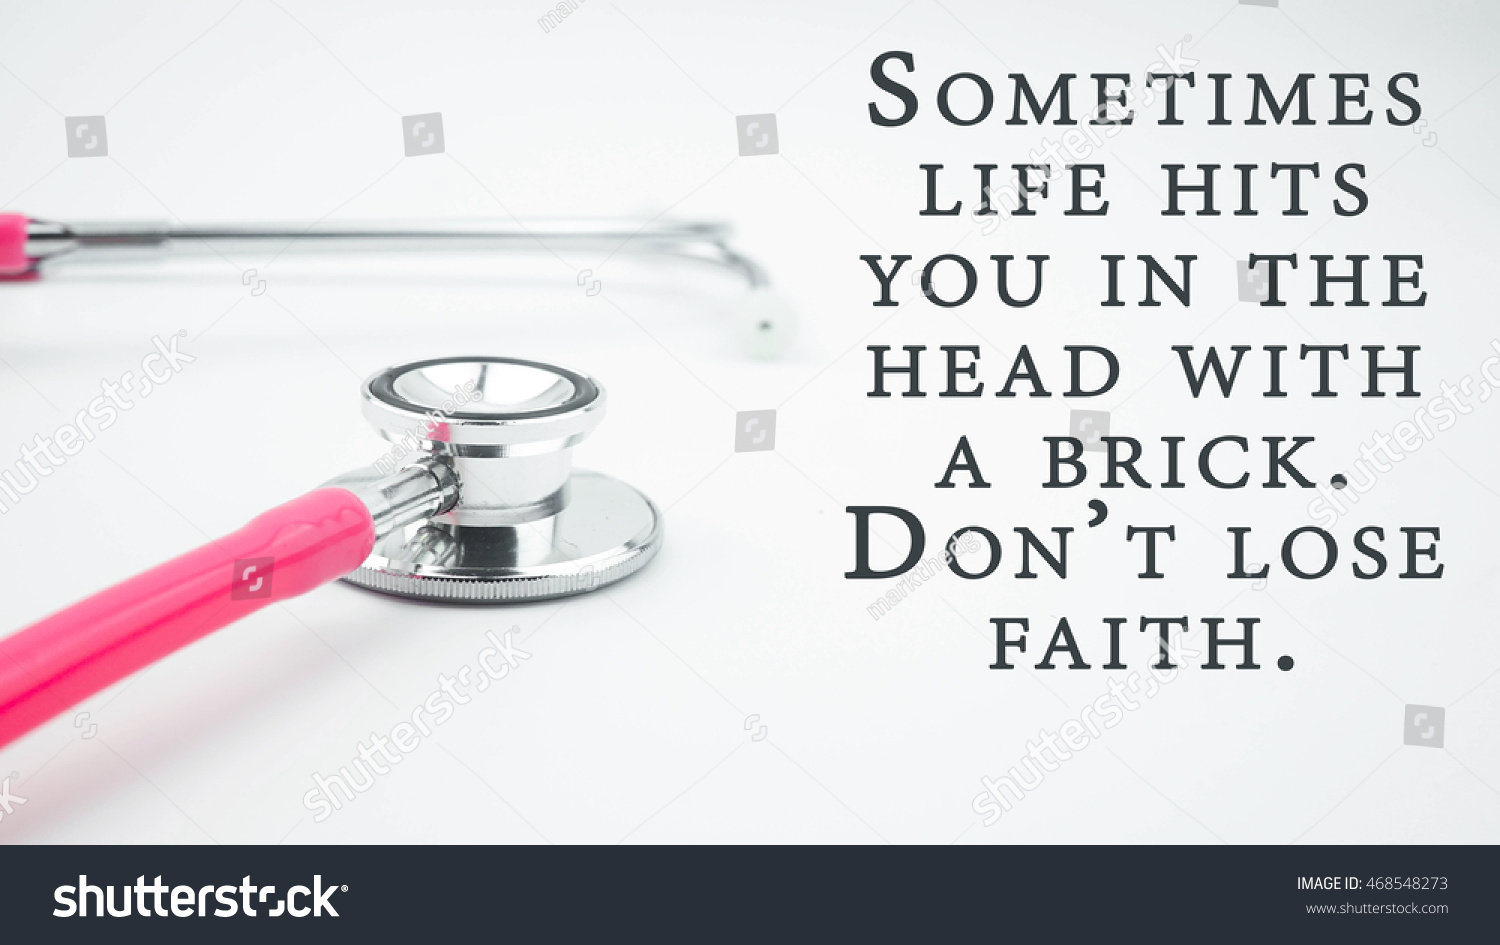 Medical Quotes About Life Conceptual Image Quotes Sometimes Life Hits Stock Photo 468548273